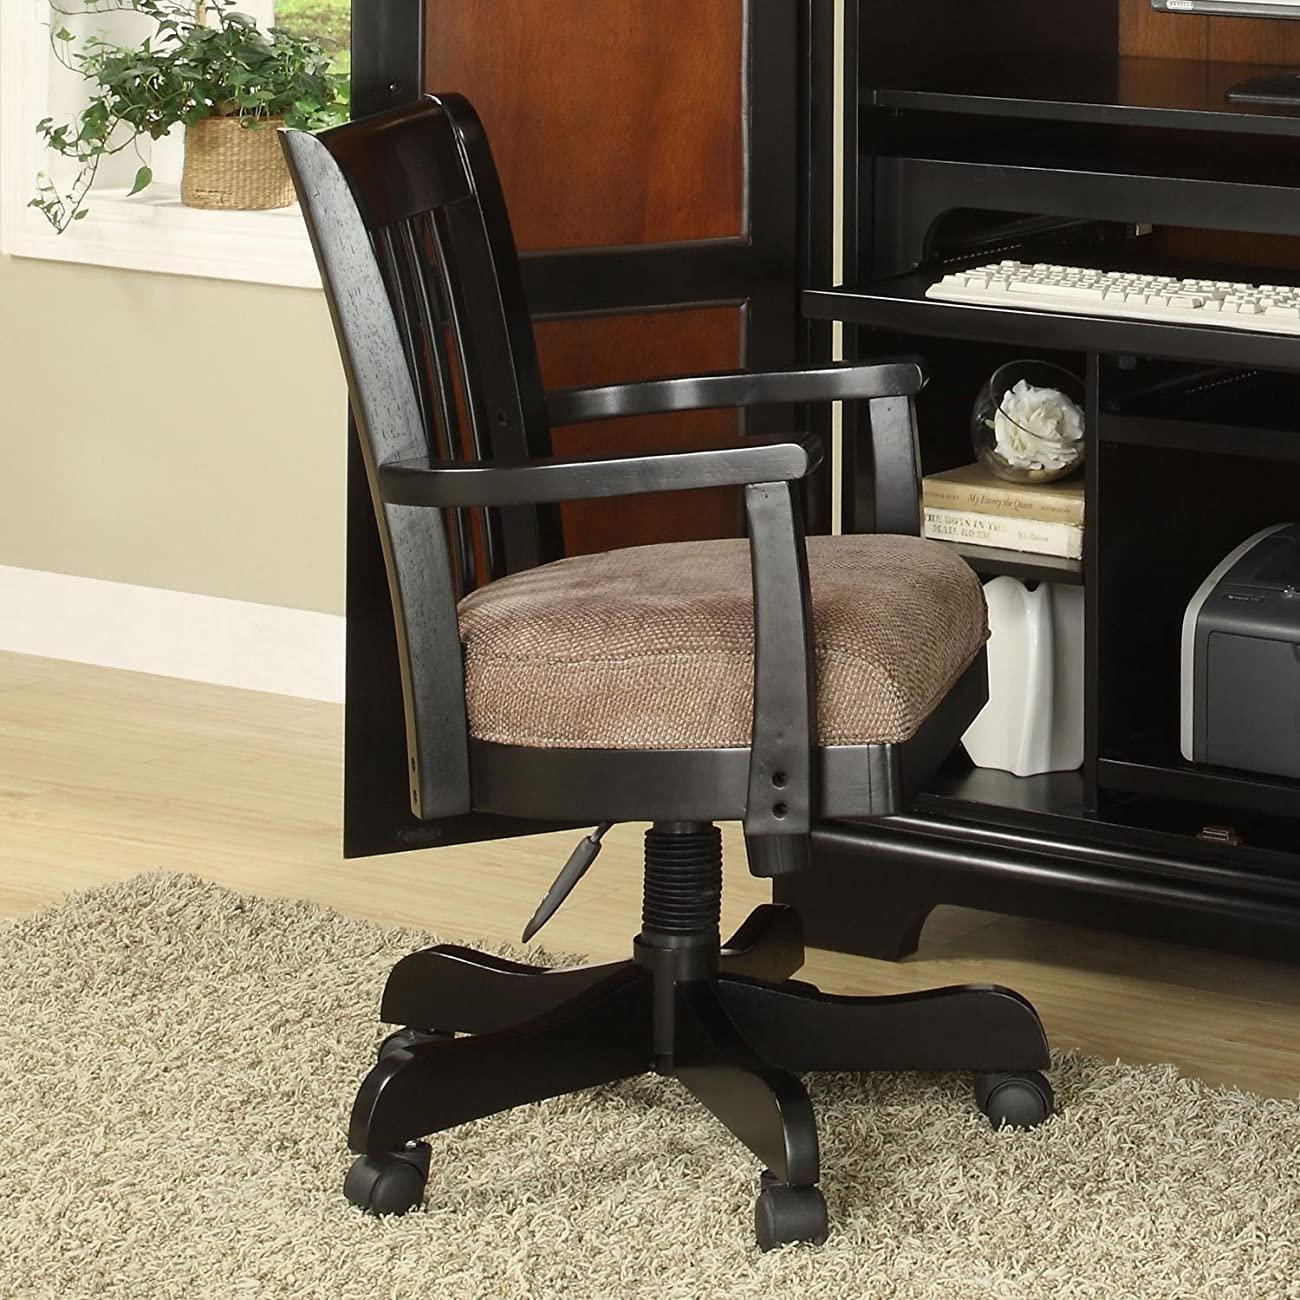 Bridgeport Desk Chair in Antique Black Finish 1